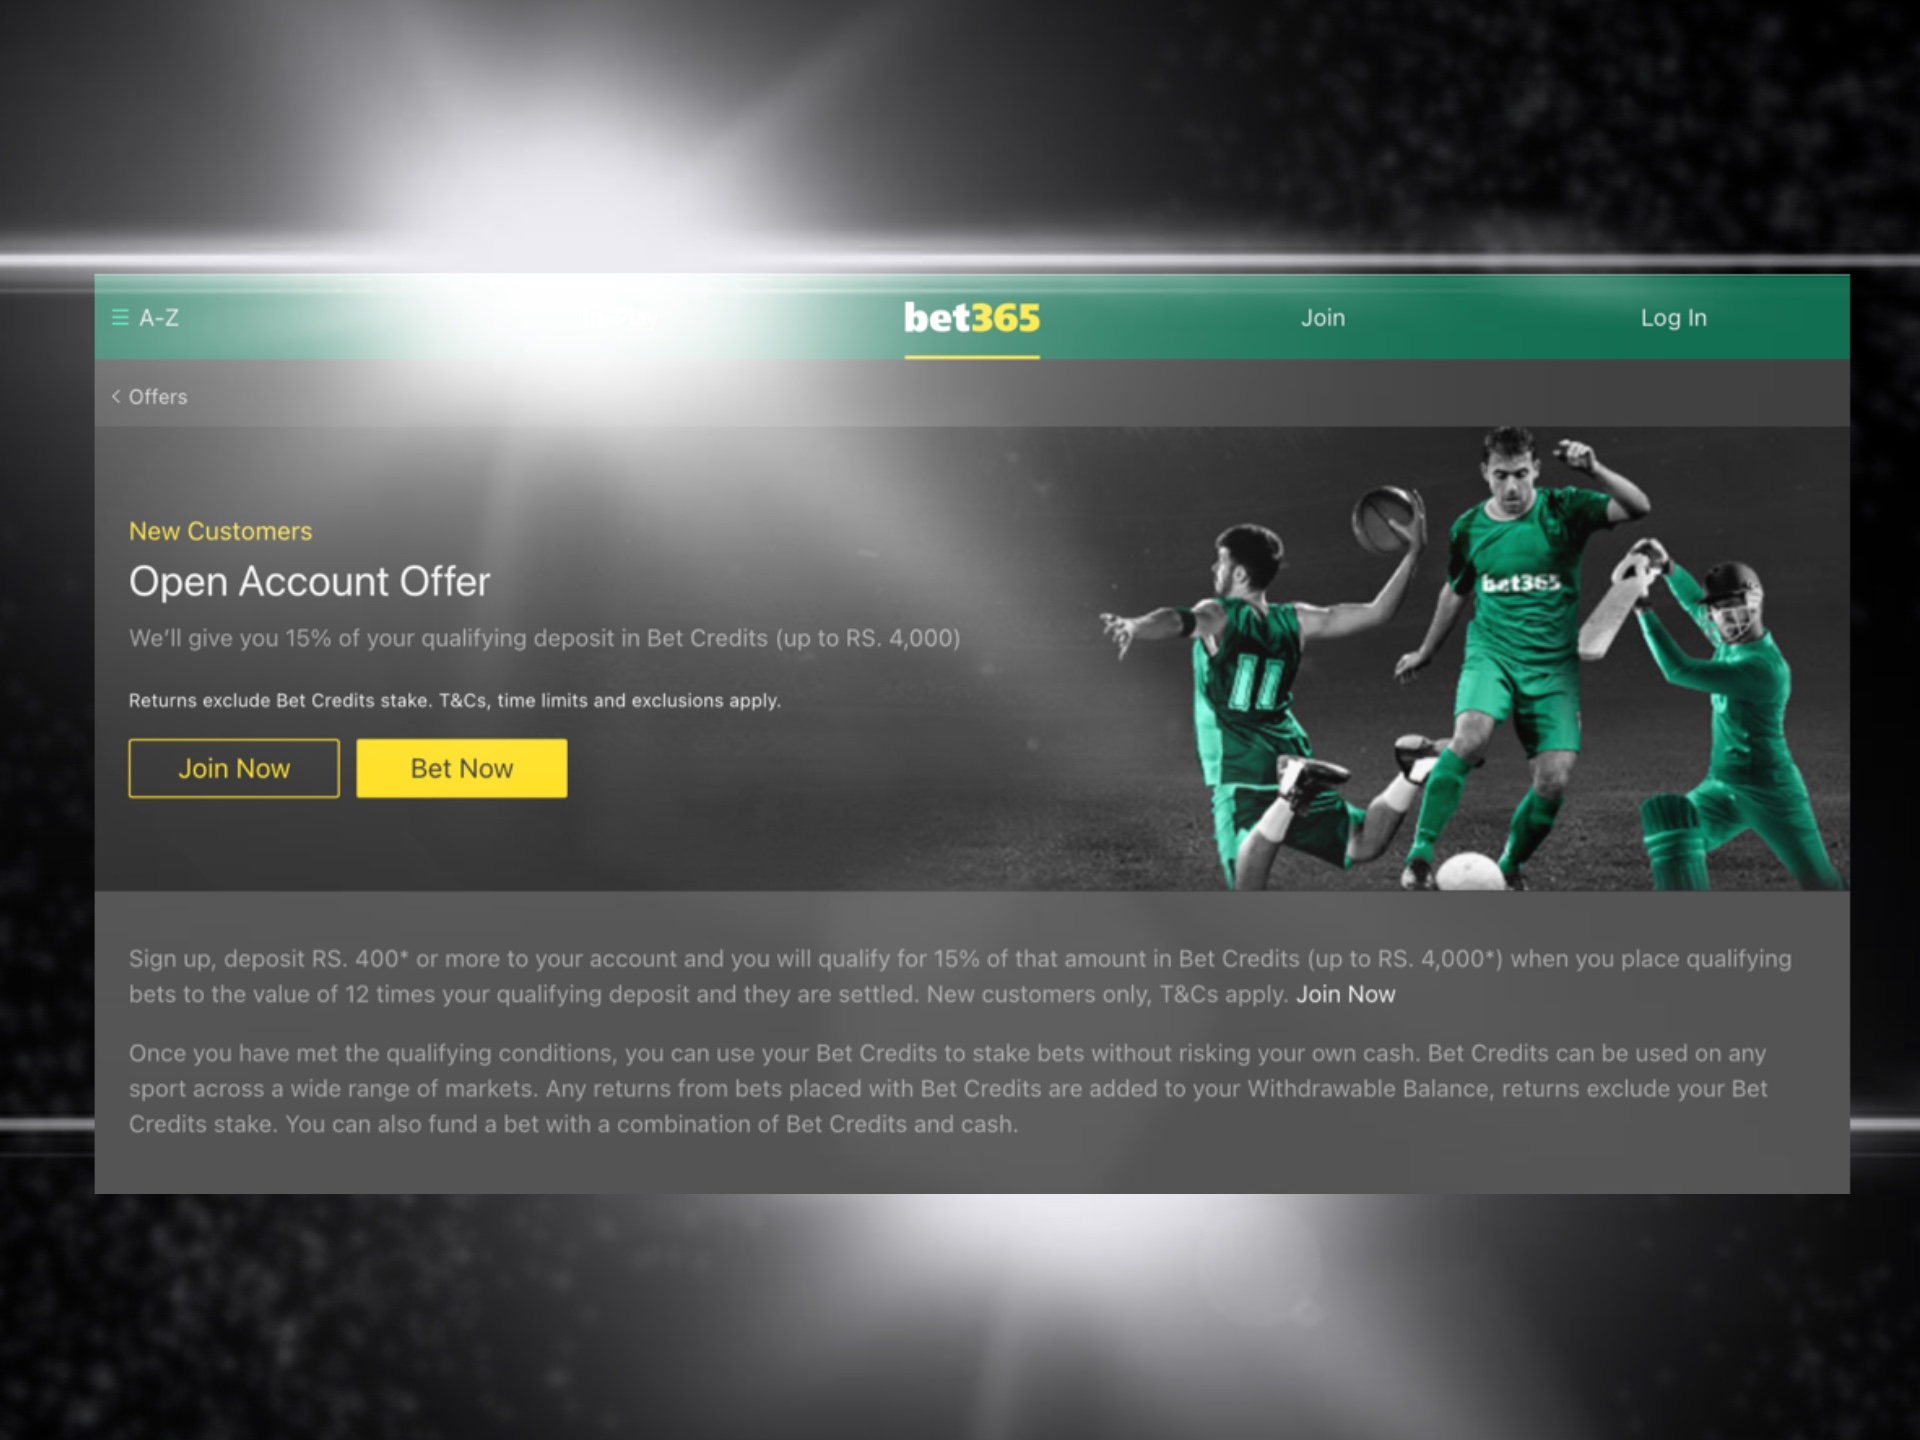 Meet all the requirements to withdraw the bet365 bonus.